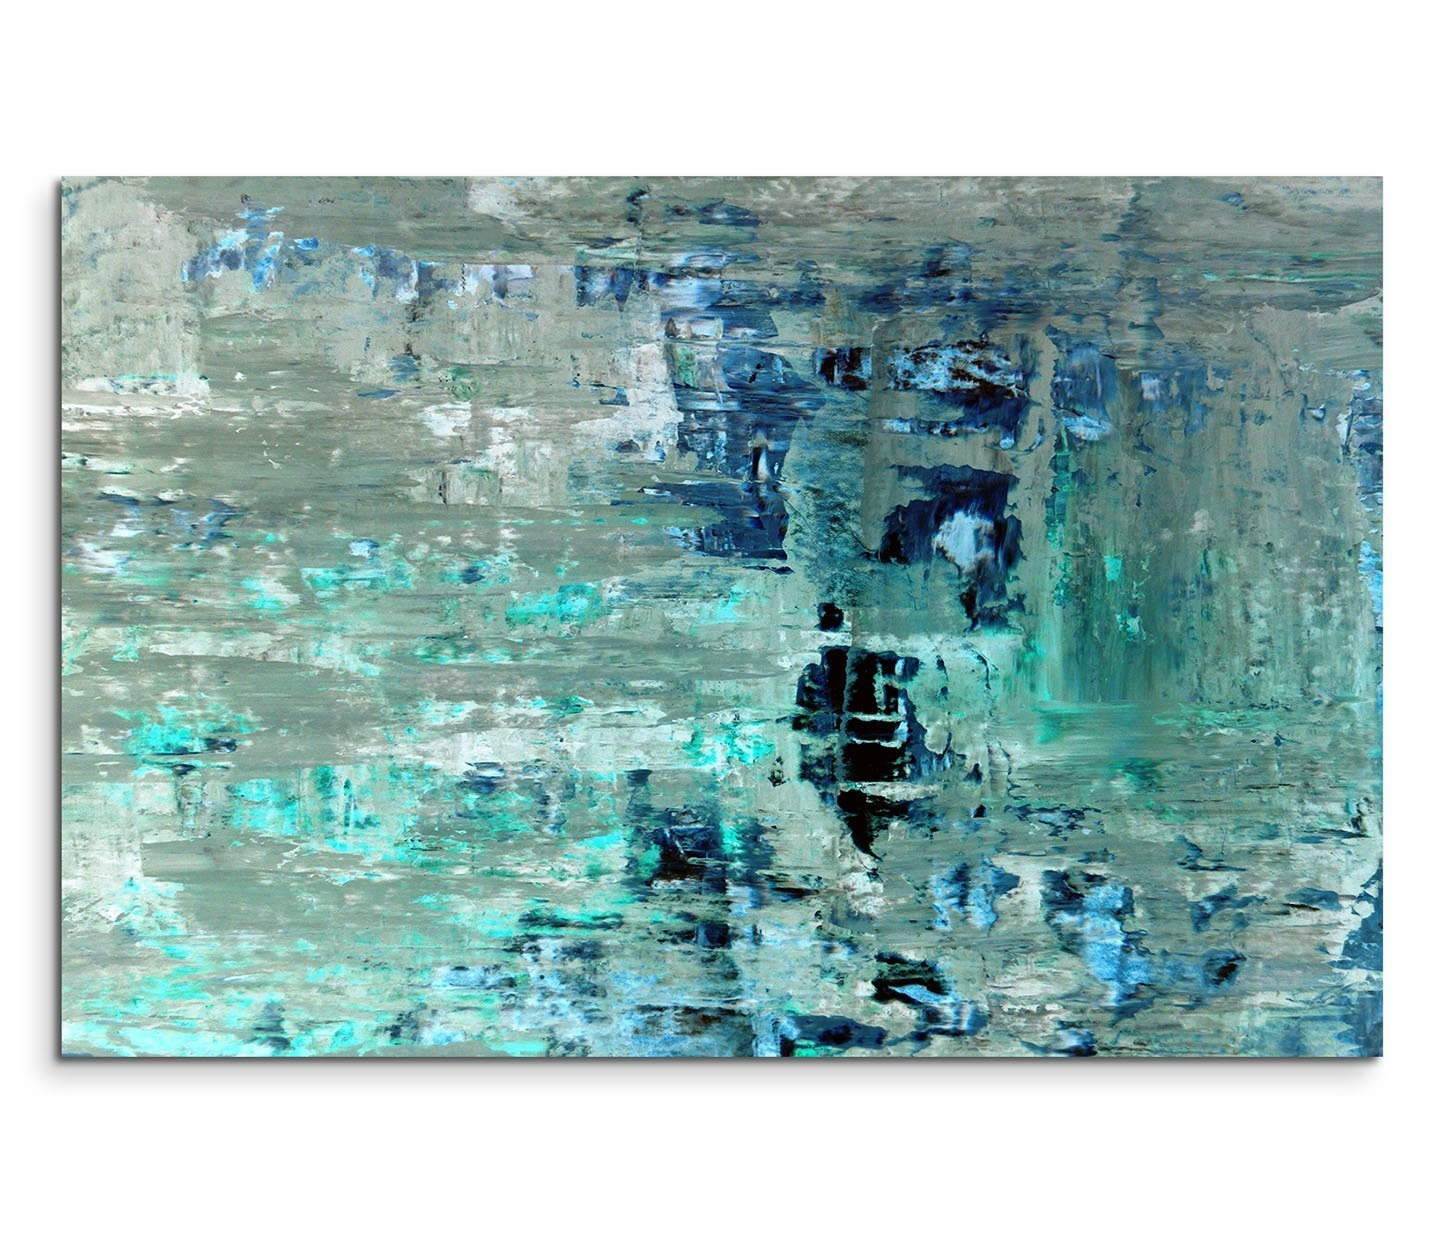 120 x 80 cm Canvas Art Painting Teal Abstract Canvas Wall Art Panoramic Paul Sinus Art GmbH Drop Ship